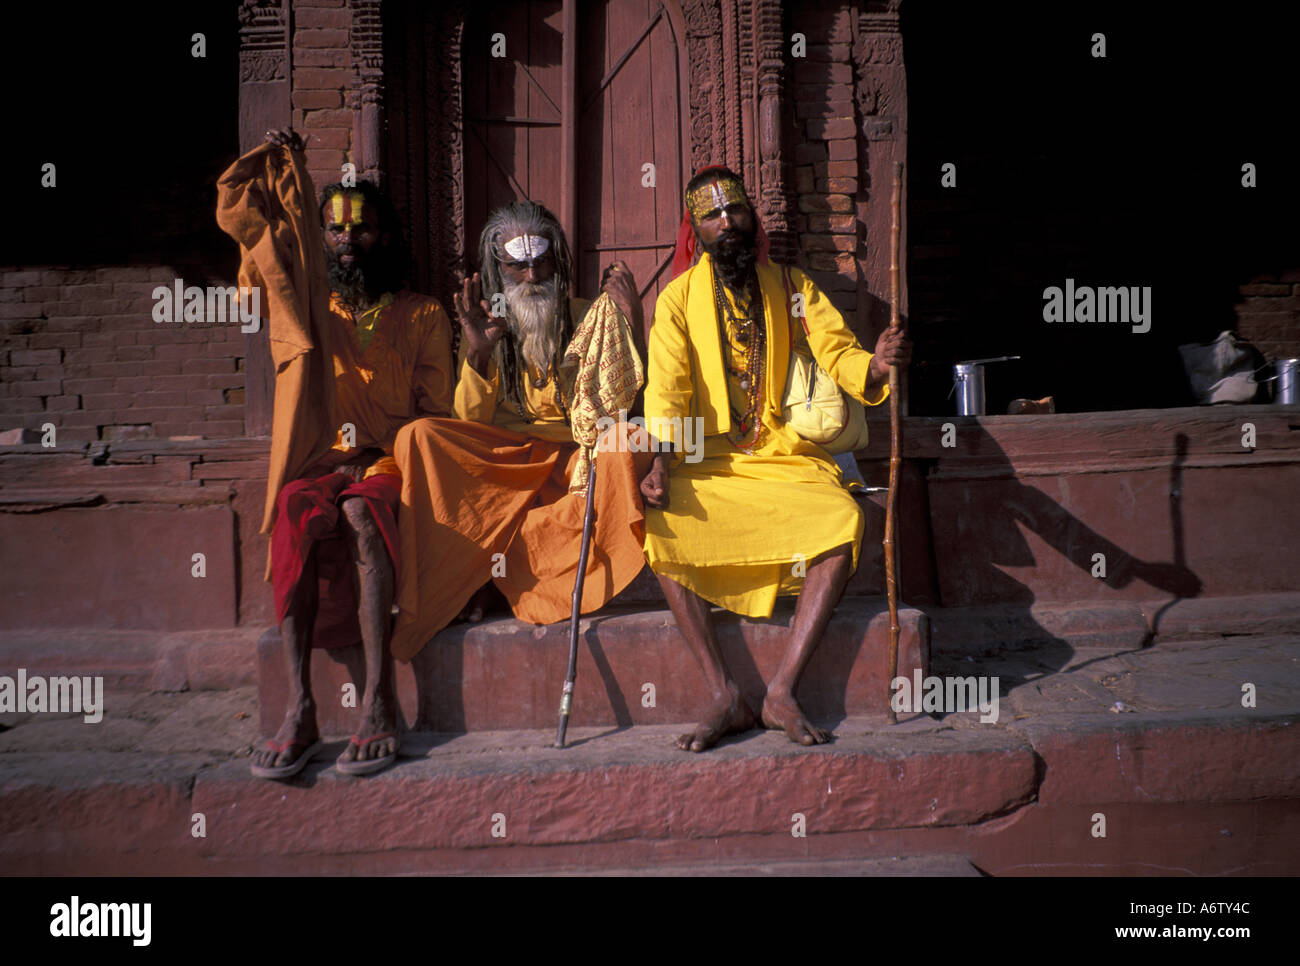 India, Khatmandu. Naga Sadus at Hindu Temple. - Stock Image